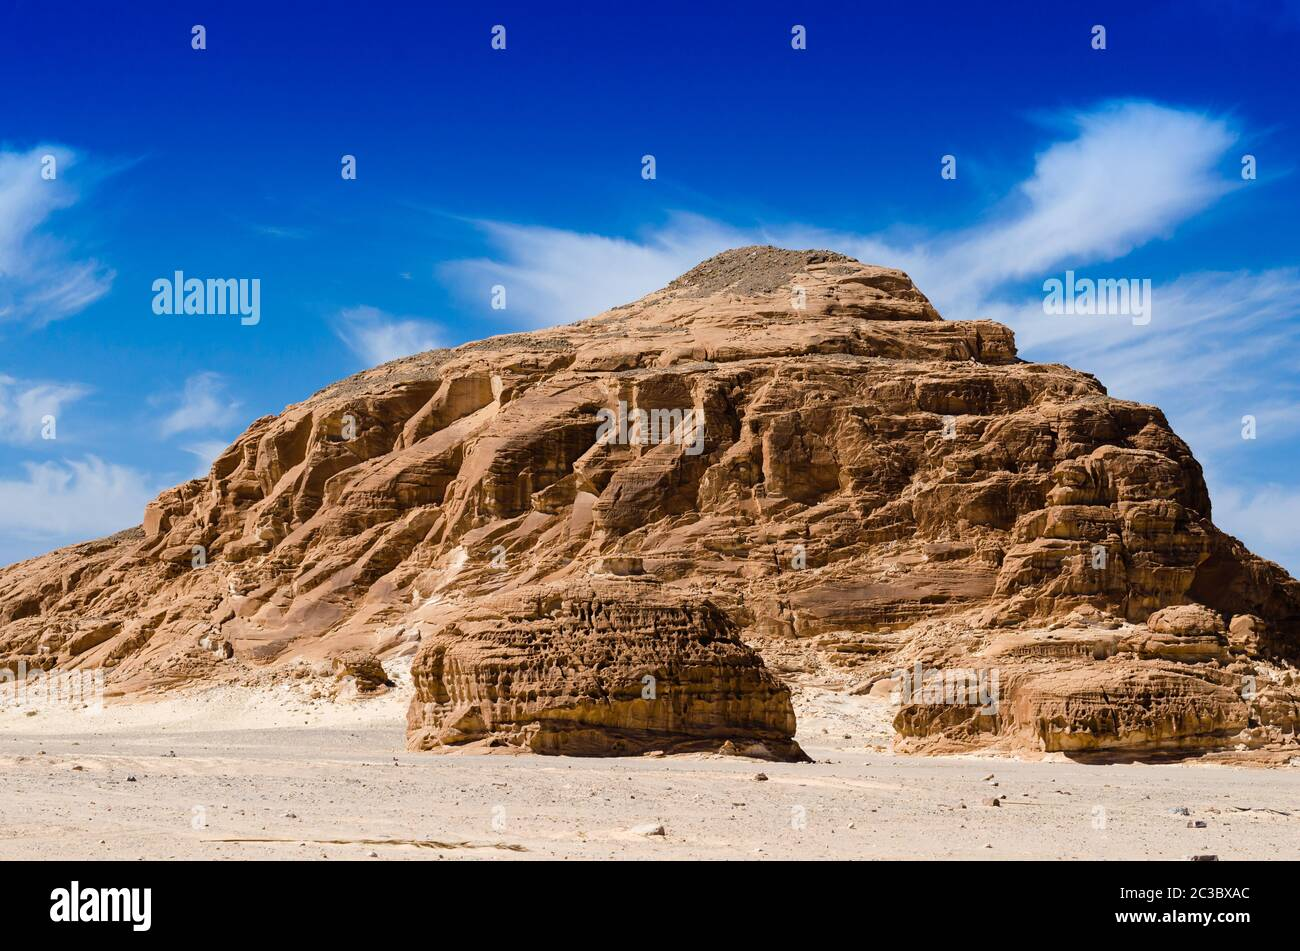 high rocky mountains against the blue sky and white clouds in the desert in Egypt Dahab South Sinai Stock Photo